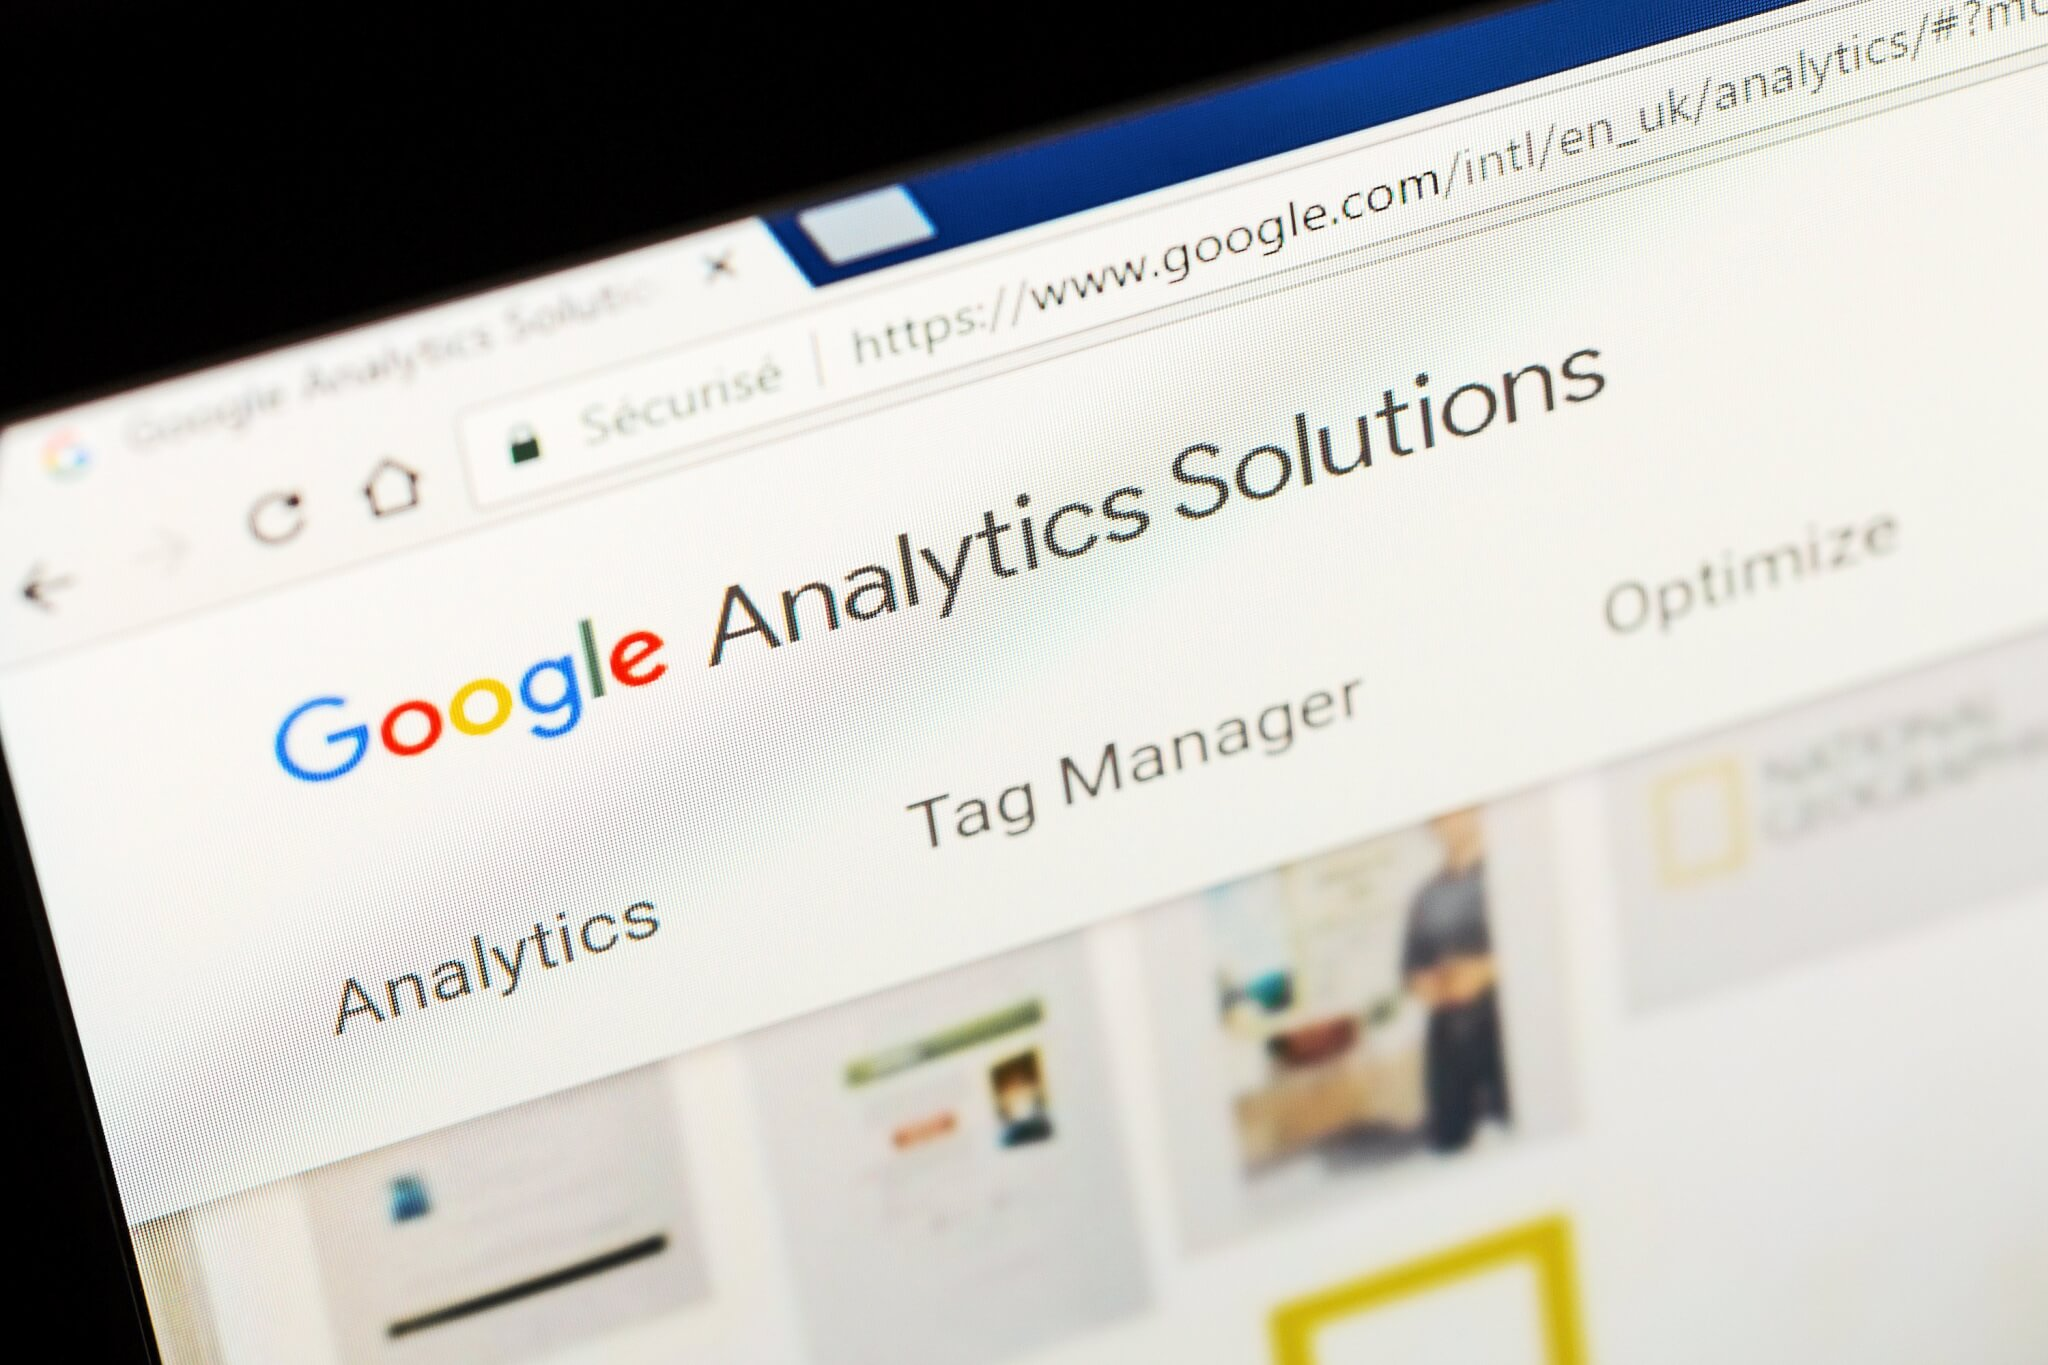 Basic ways to use Google Analytics to find better content ideas